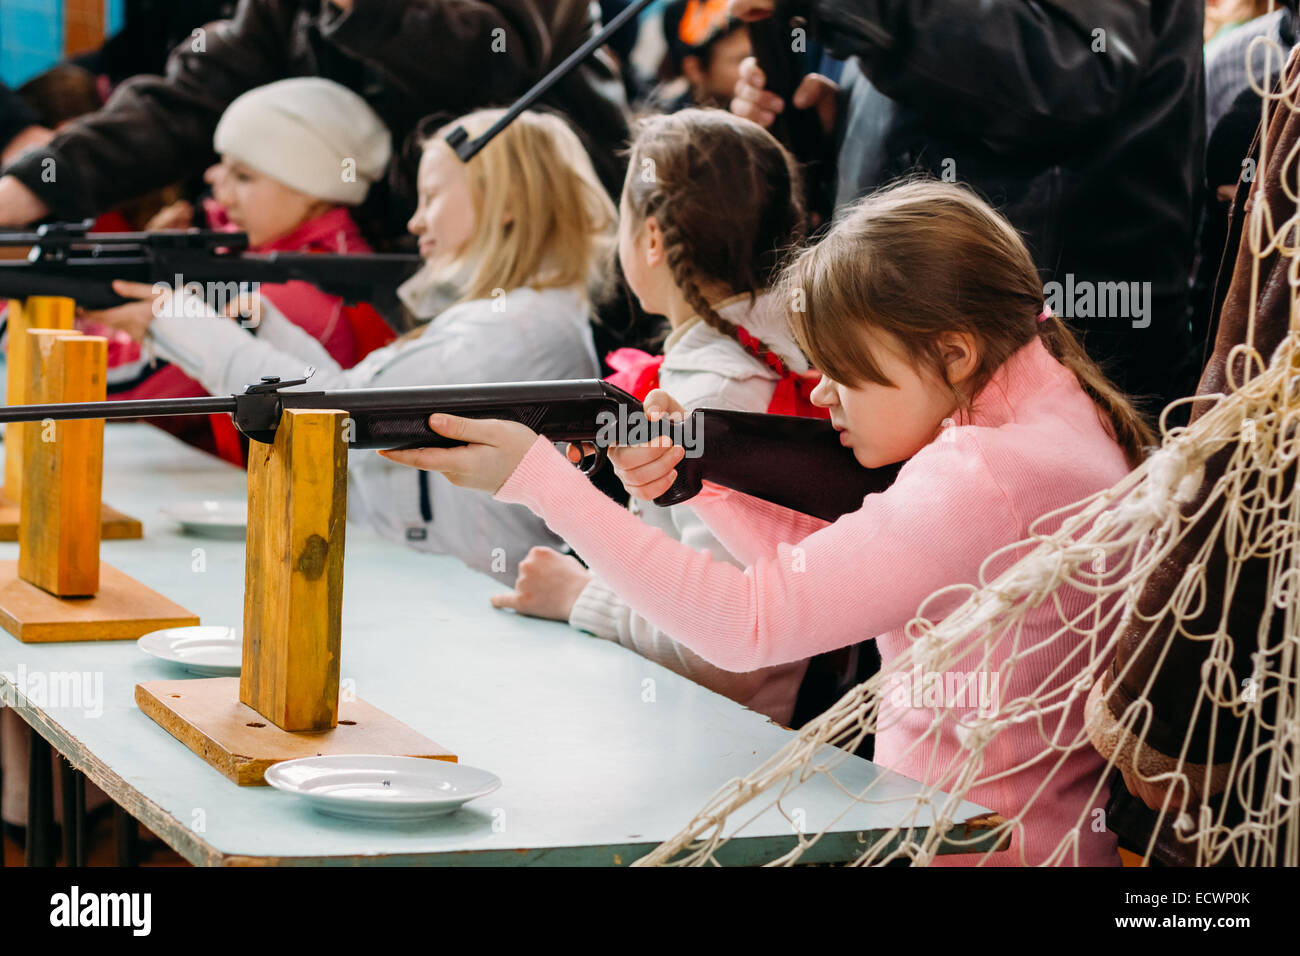 Unrecognizable Belarusian secondary school pupils girl shooting an air rifle at a school sports competition 'Ski - Stock Image